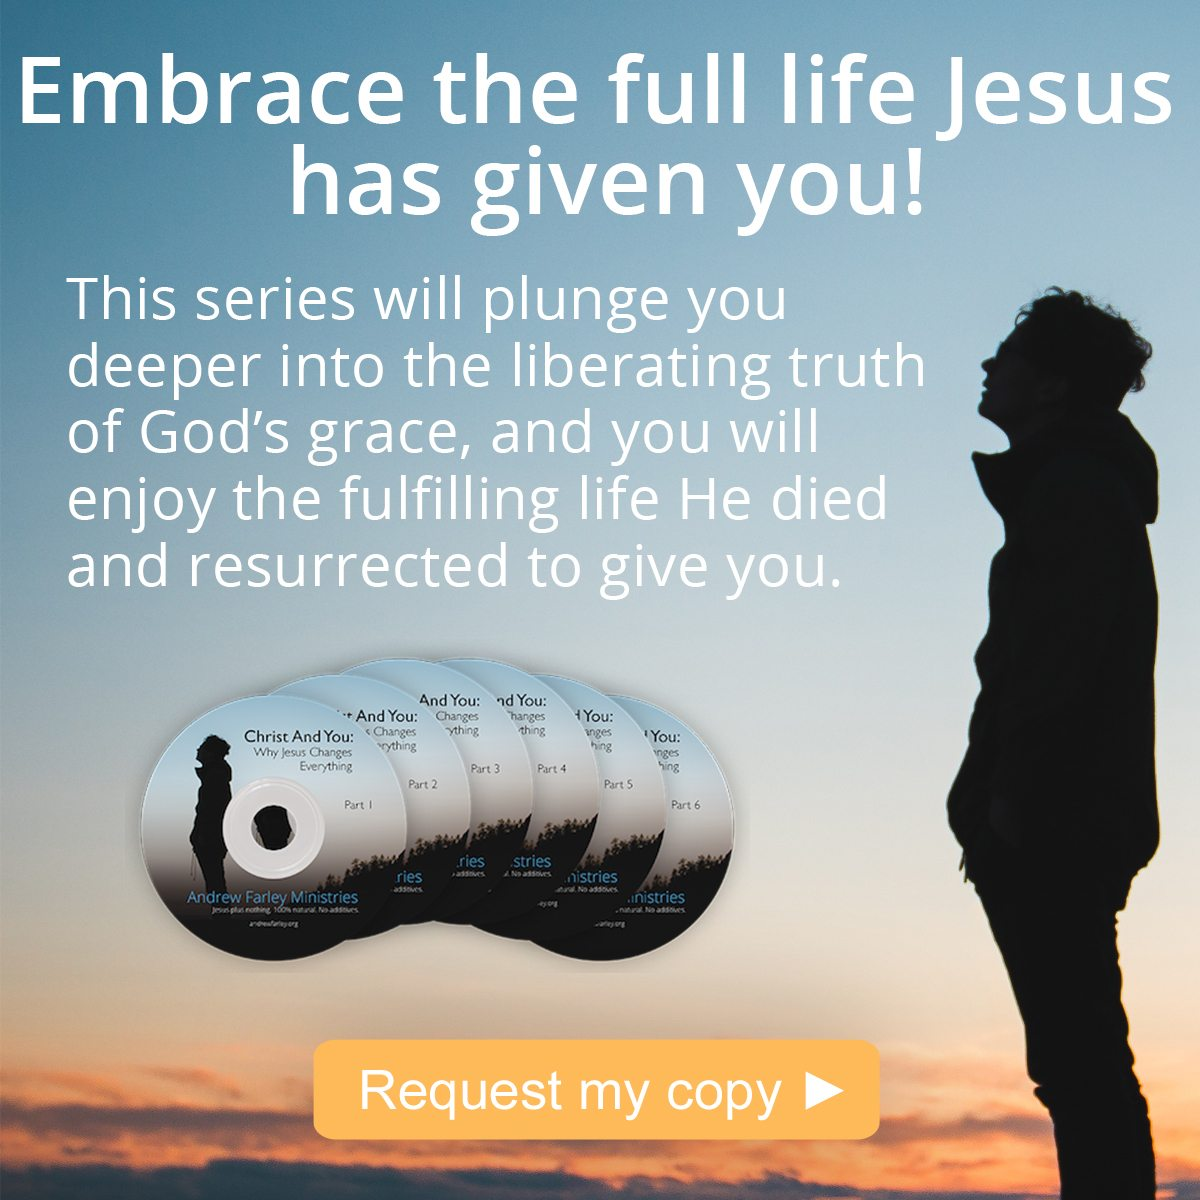 Christ And You, 6-message teaching series